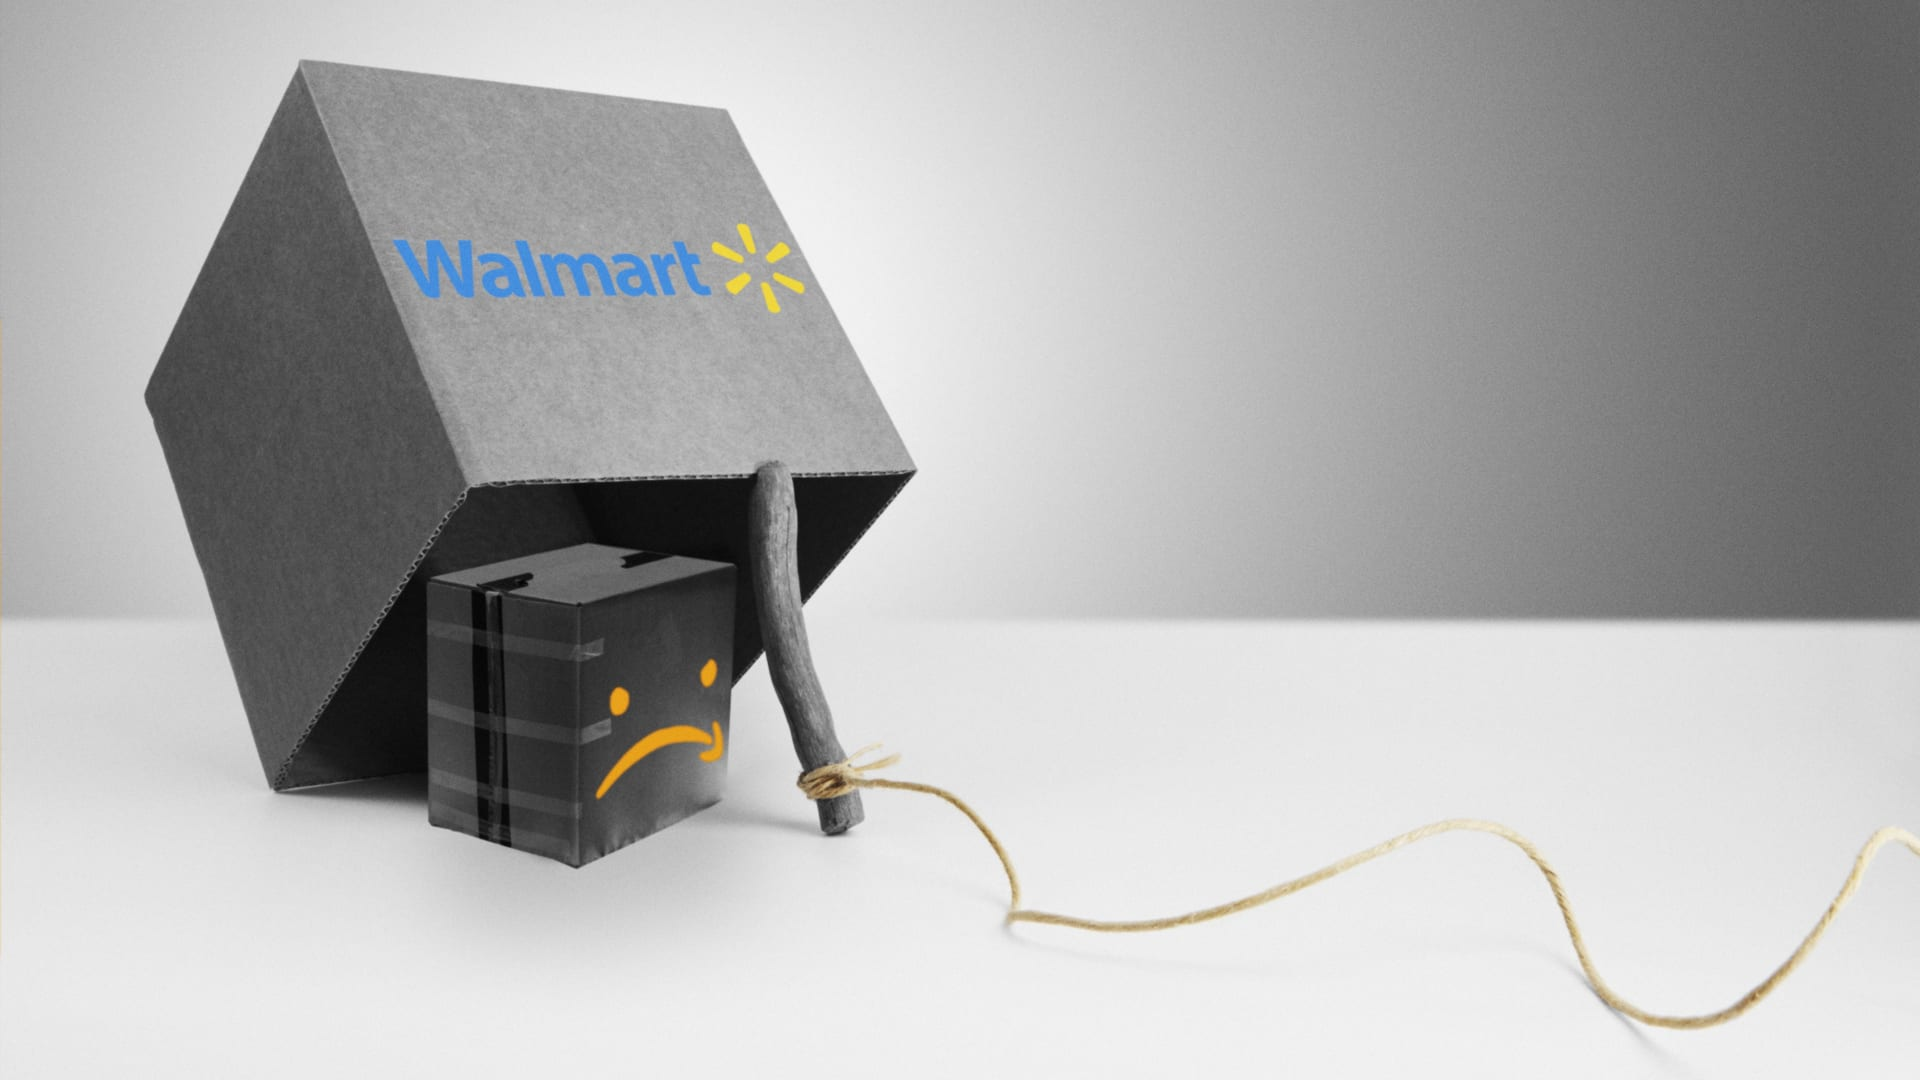 Walmart Is Going All Out to Lure Amazon Customers. Here's Why It Might Actually Work